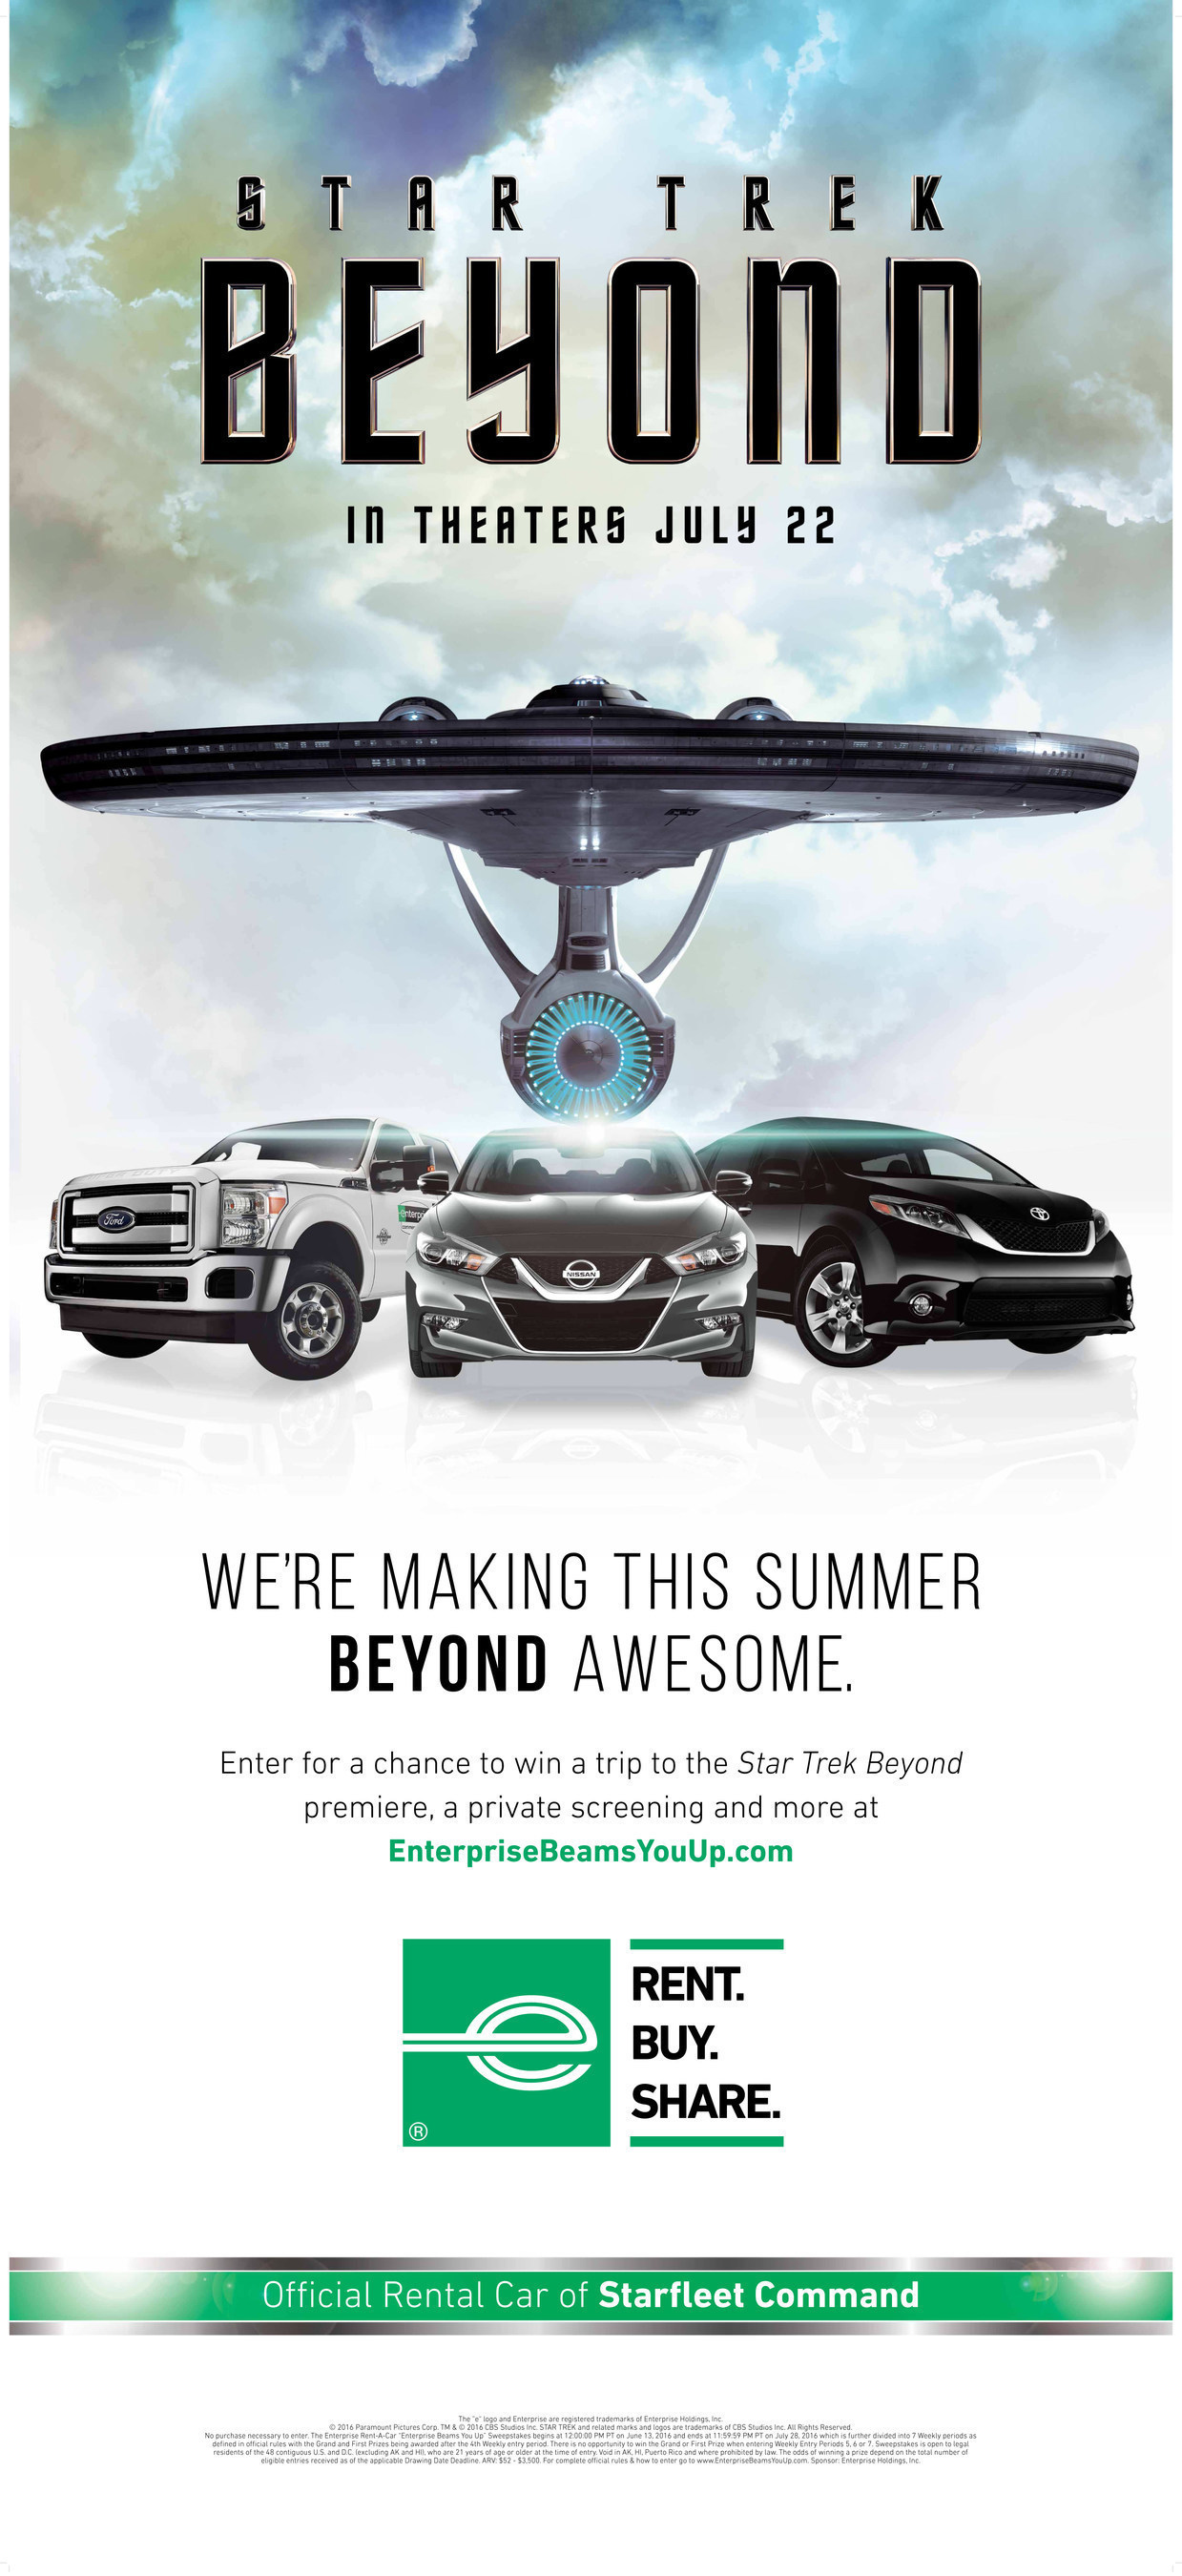 Until We Can Beam You Up, We'll Pick You Up. Enterprise Rent-A-Car Partners with Paramount Pictures for Launch of New 'STAR TREK BEYOND' Movie